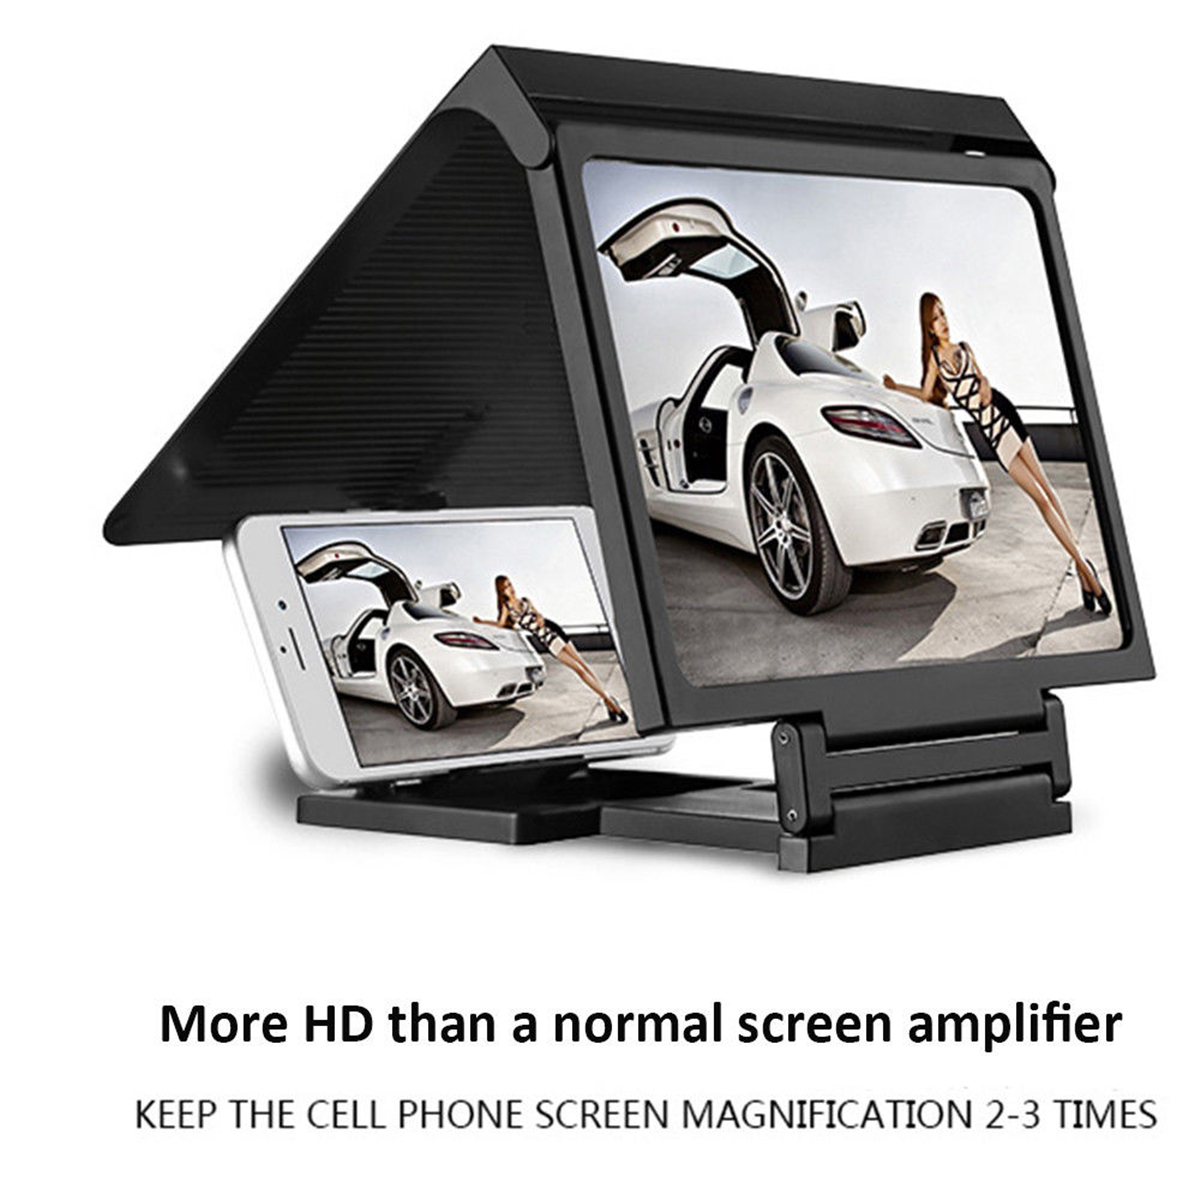 Universal 10 inch HD Clear Image Enlarge Screen Magnifier Desktop Stand Holder for iPhone Xiaomi Mobile Phone